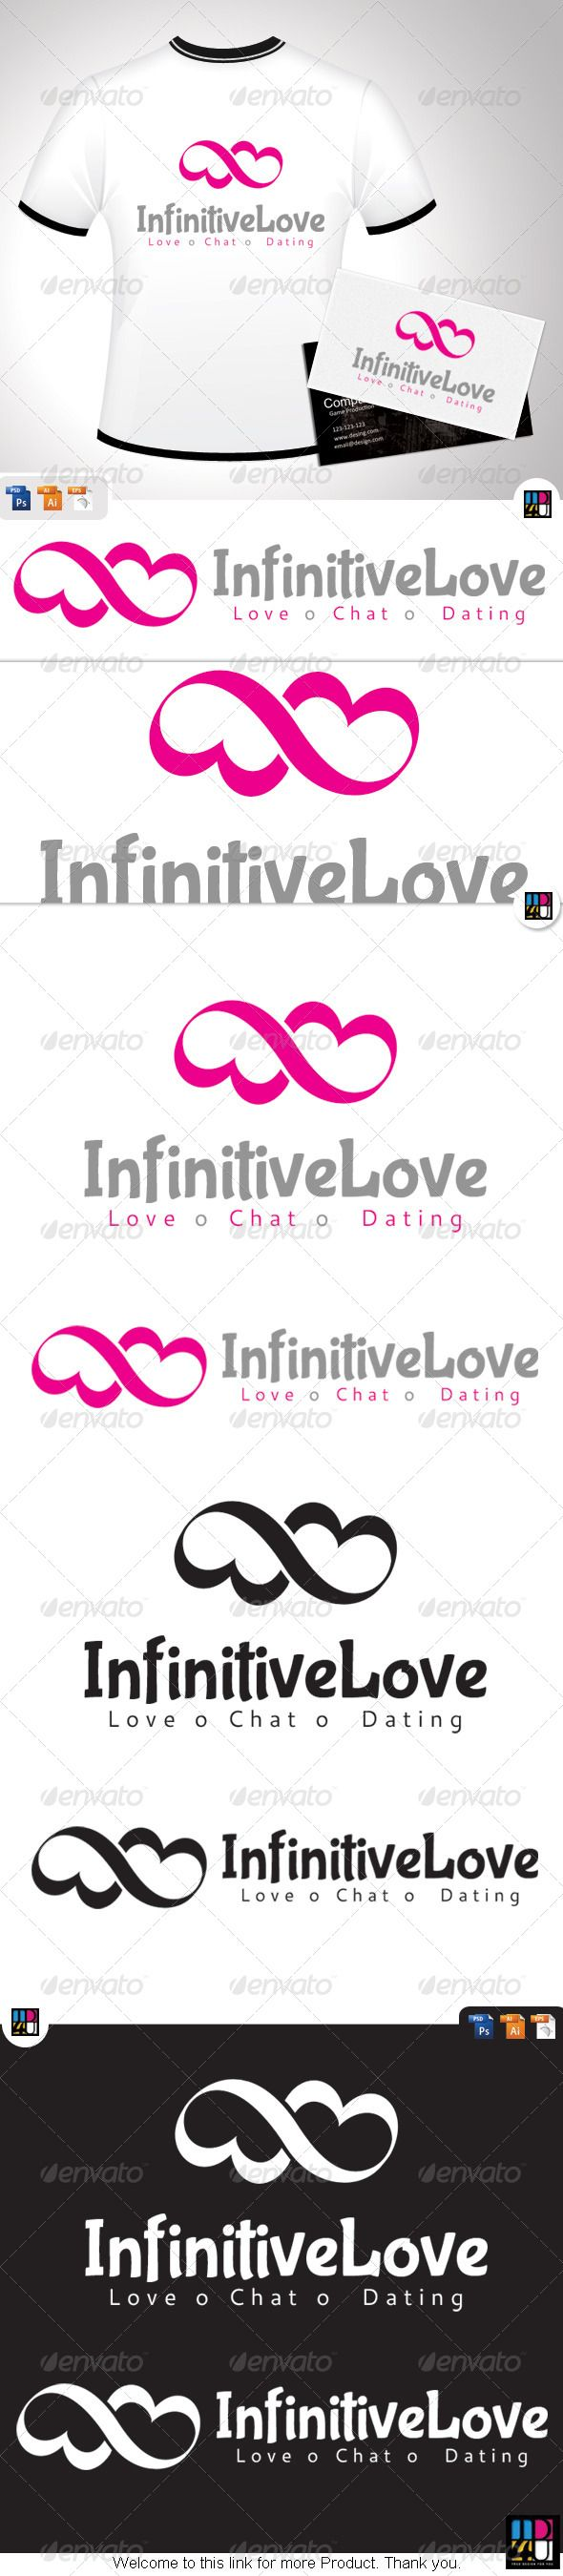 Infinitive Love — Photoshop PSD #chat #technology • Available here → https://graphicriver.net/item/infinitive-love/5975349?ref=pxcr